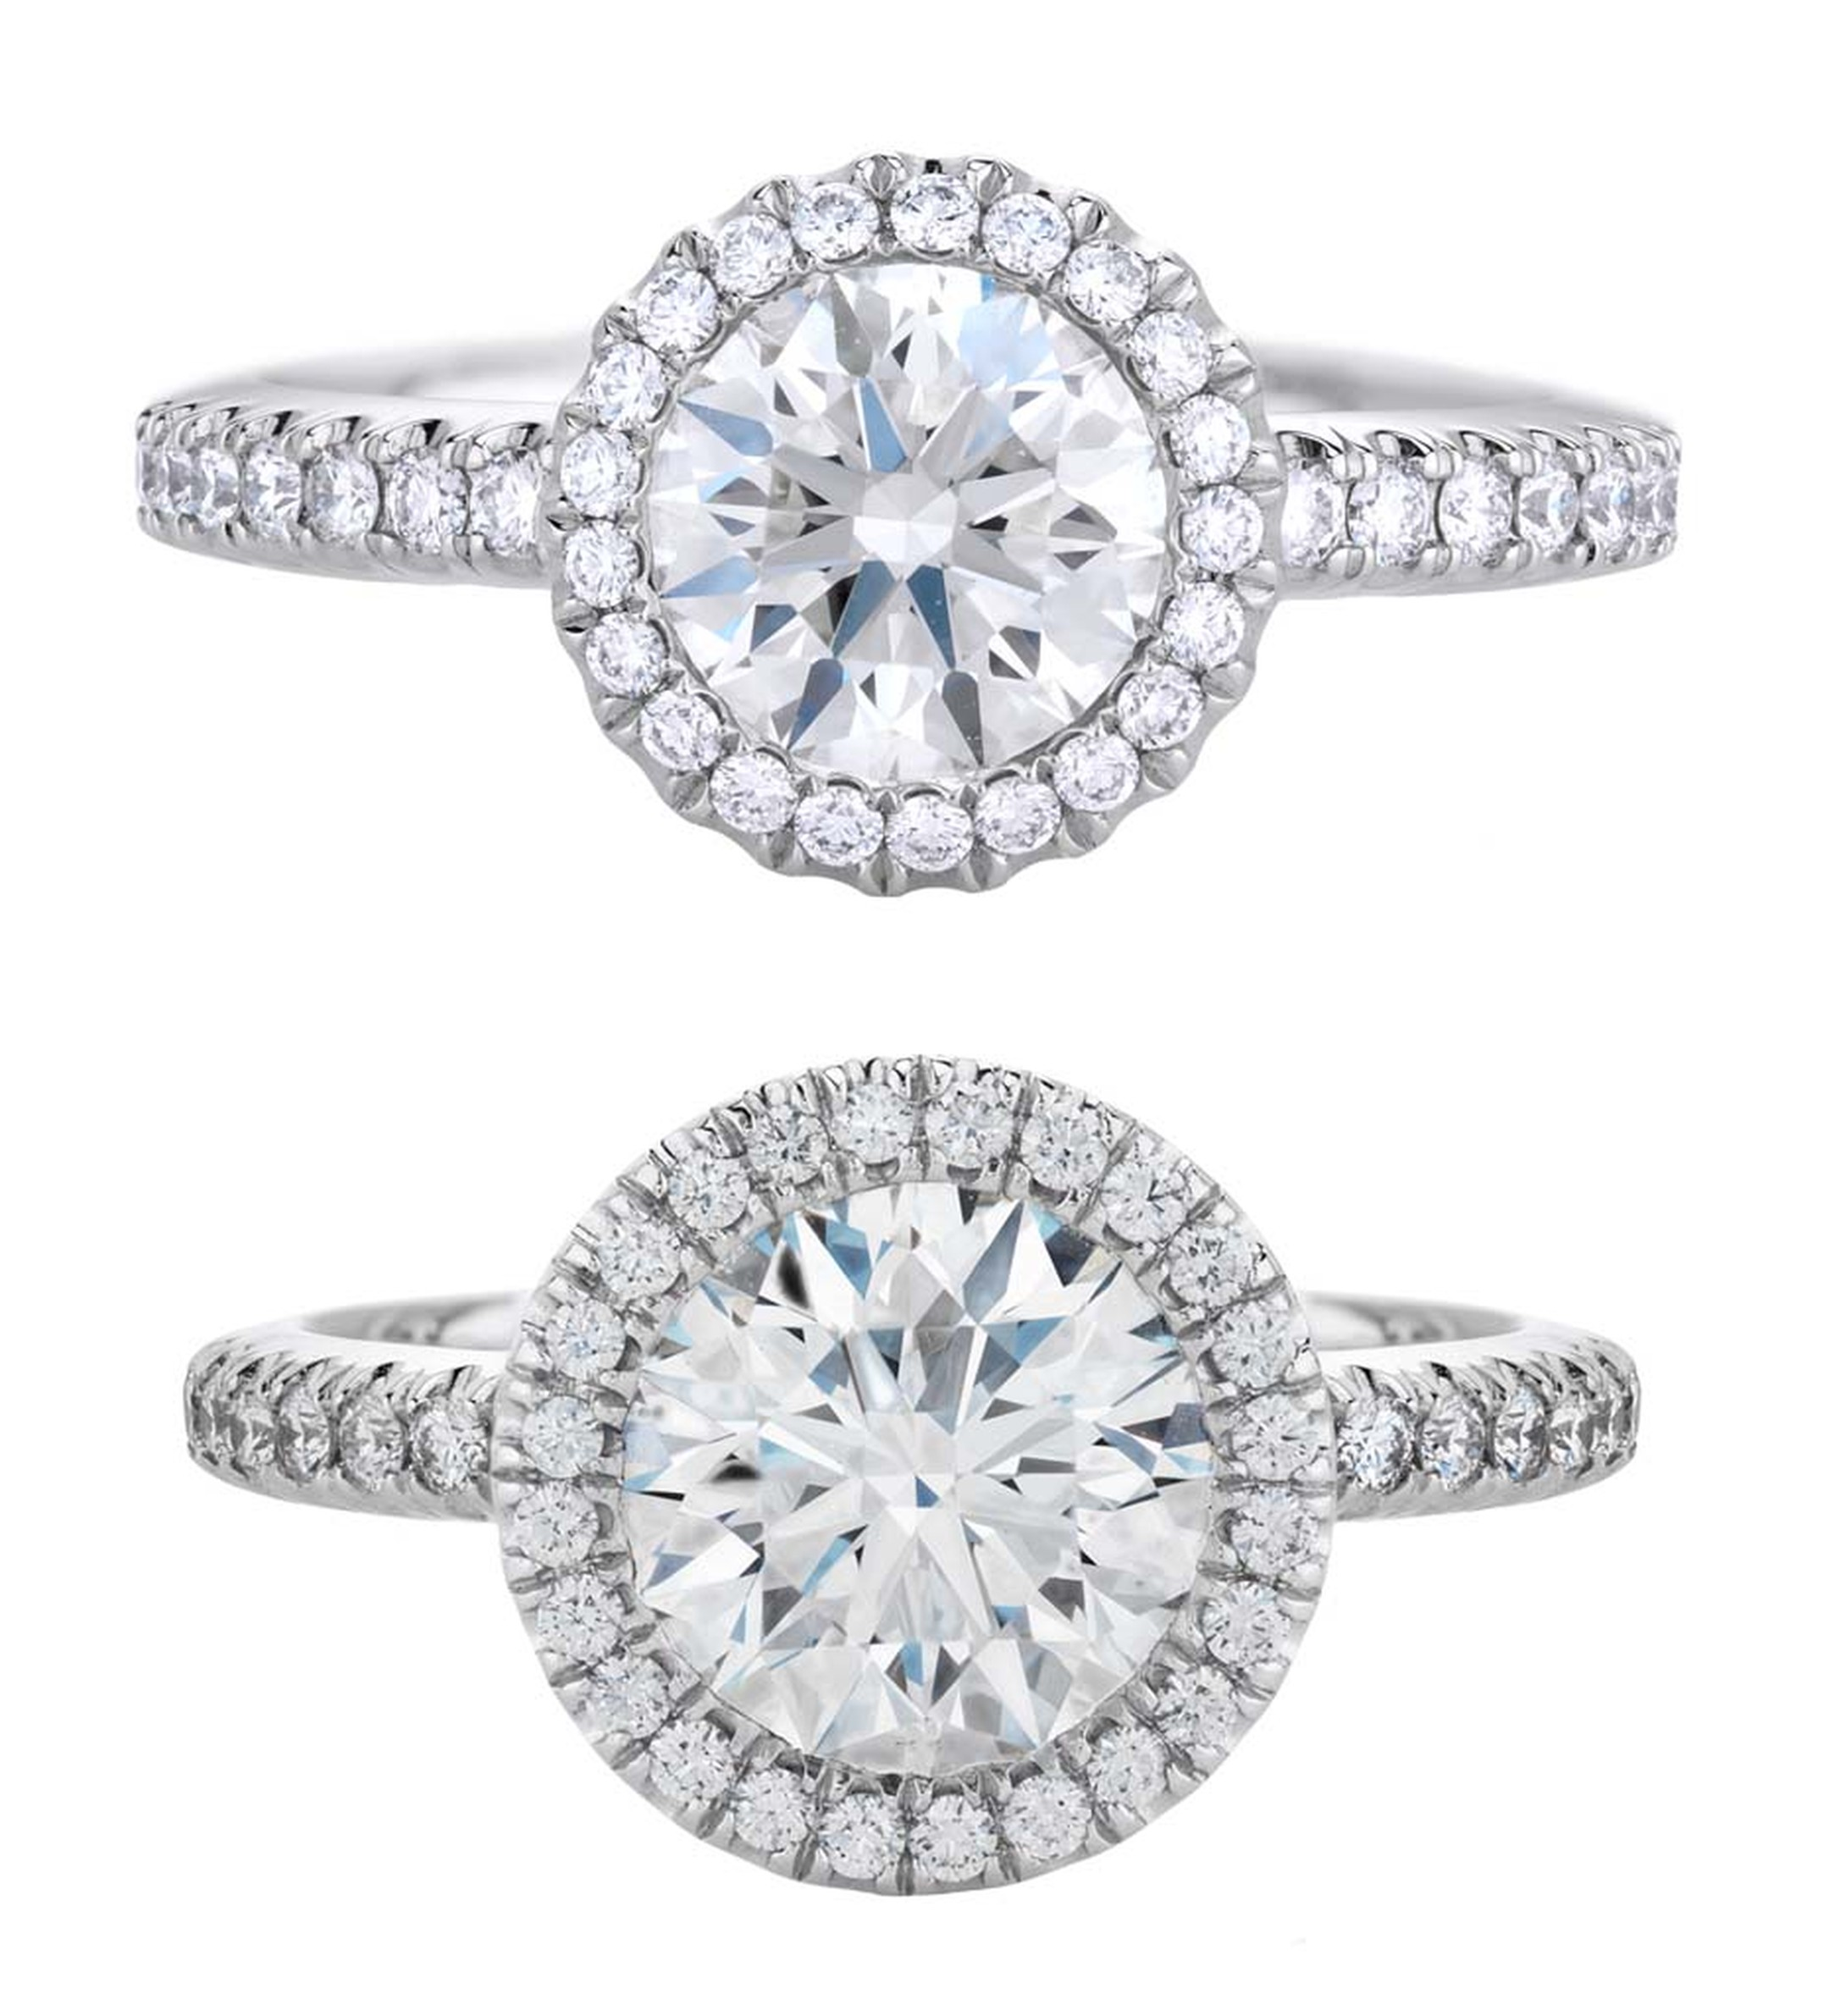 De Beers Aura 1 carat diamond engagement ring and 2 carat diamond engagement ring